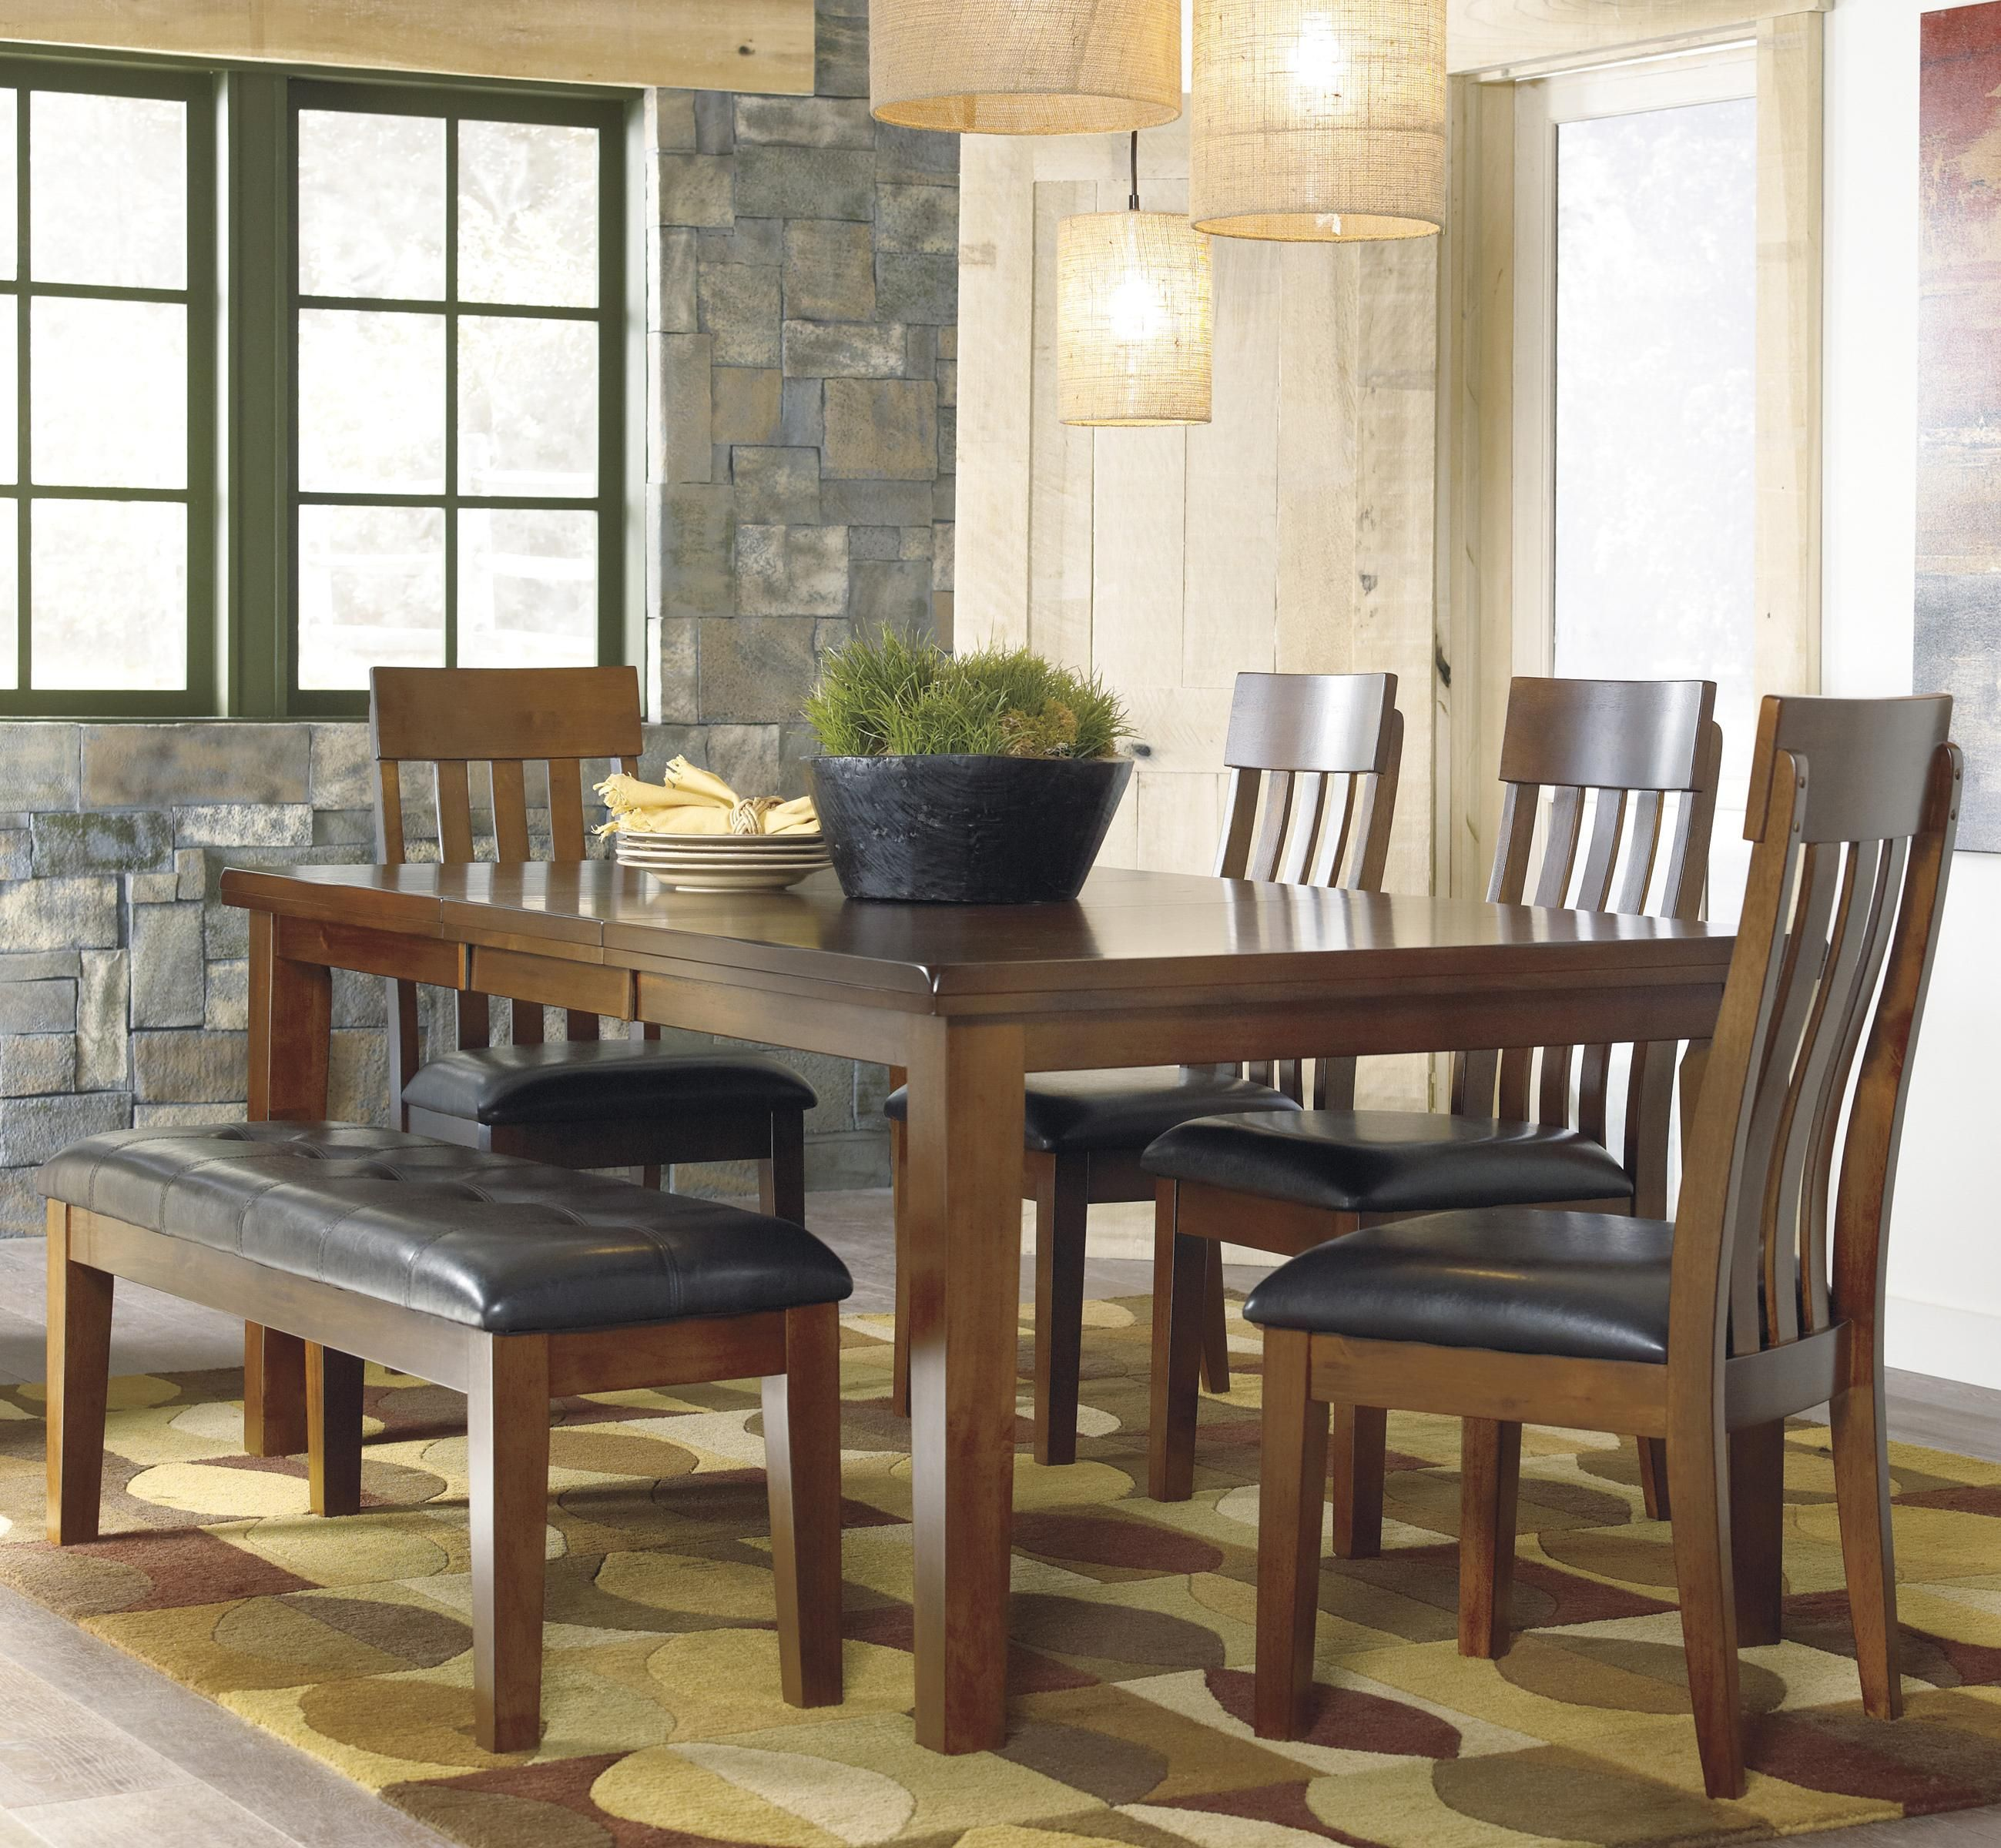 Pingloria Holland On Decor Ideas  Pinterest  Bench Dining Amusing Cheap Dining Room Chairs Set Of 6 Design Ideas